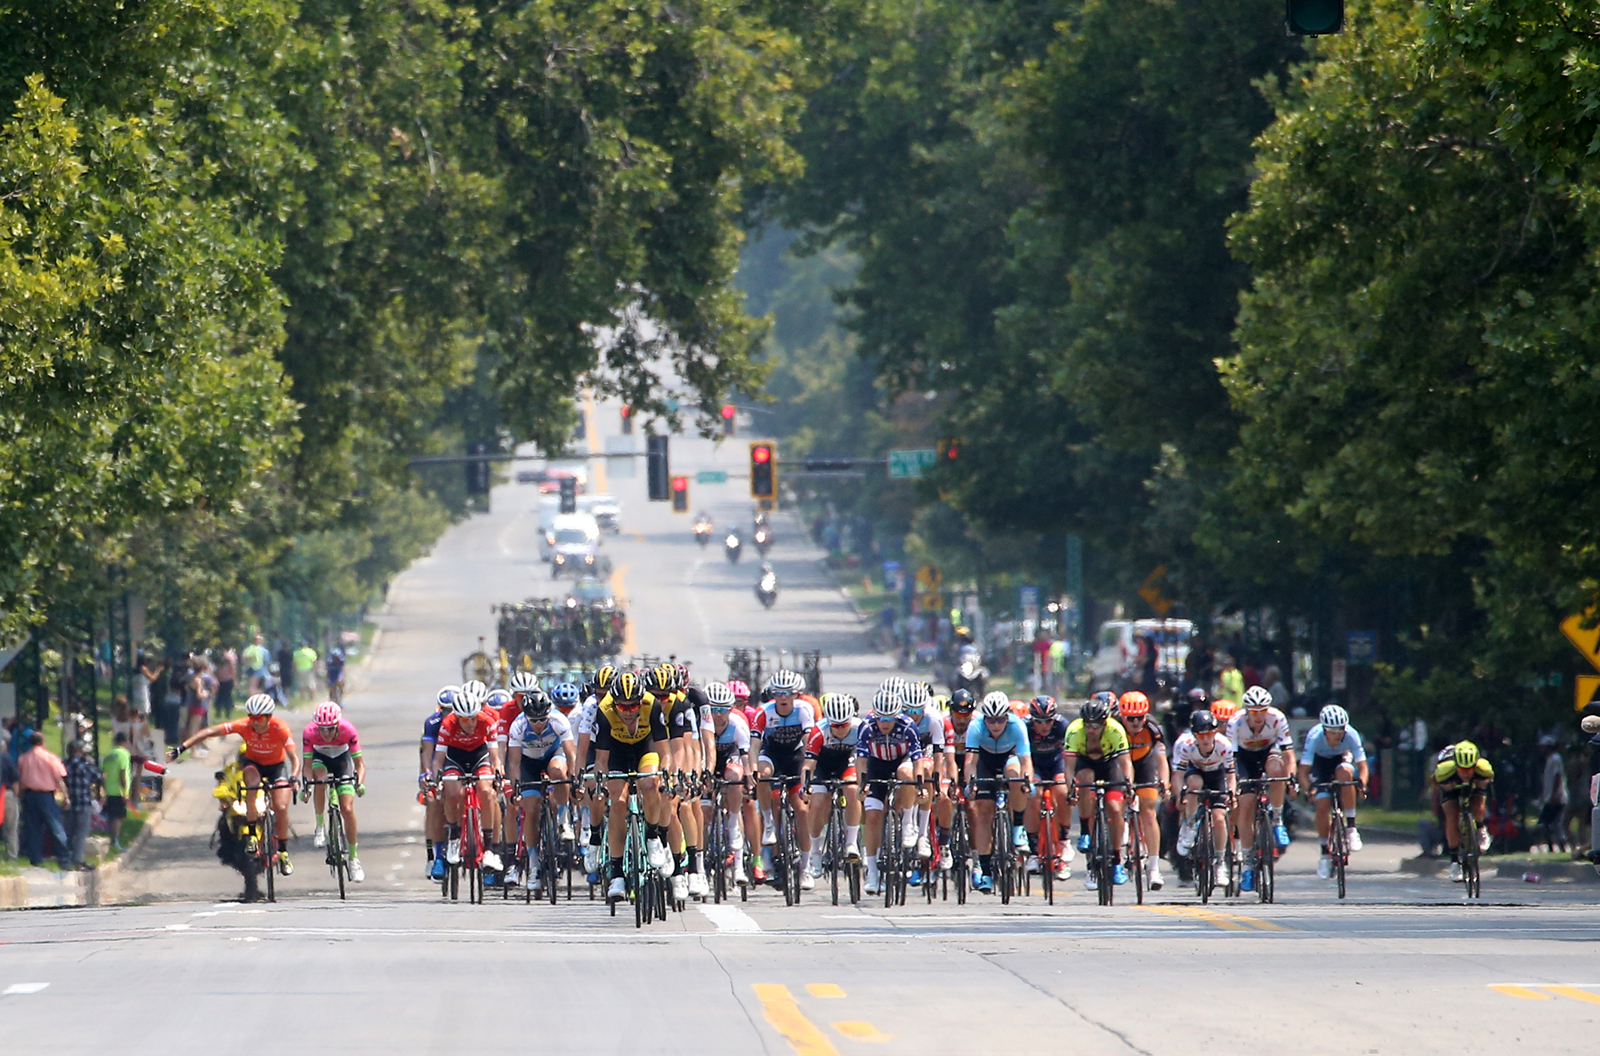 The peloton charges through Downtown SLC. 2018 Tour of Utah Stage 4, August 8, 2018, Salt Lake City, Utah. Photo by Cathy Fegan-Kim, cottonsoxphotography.net